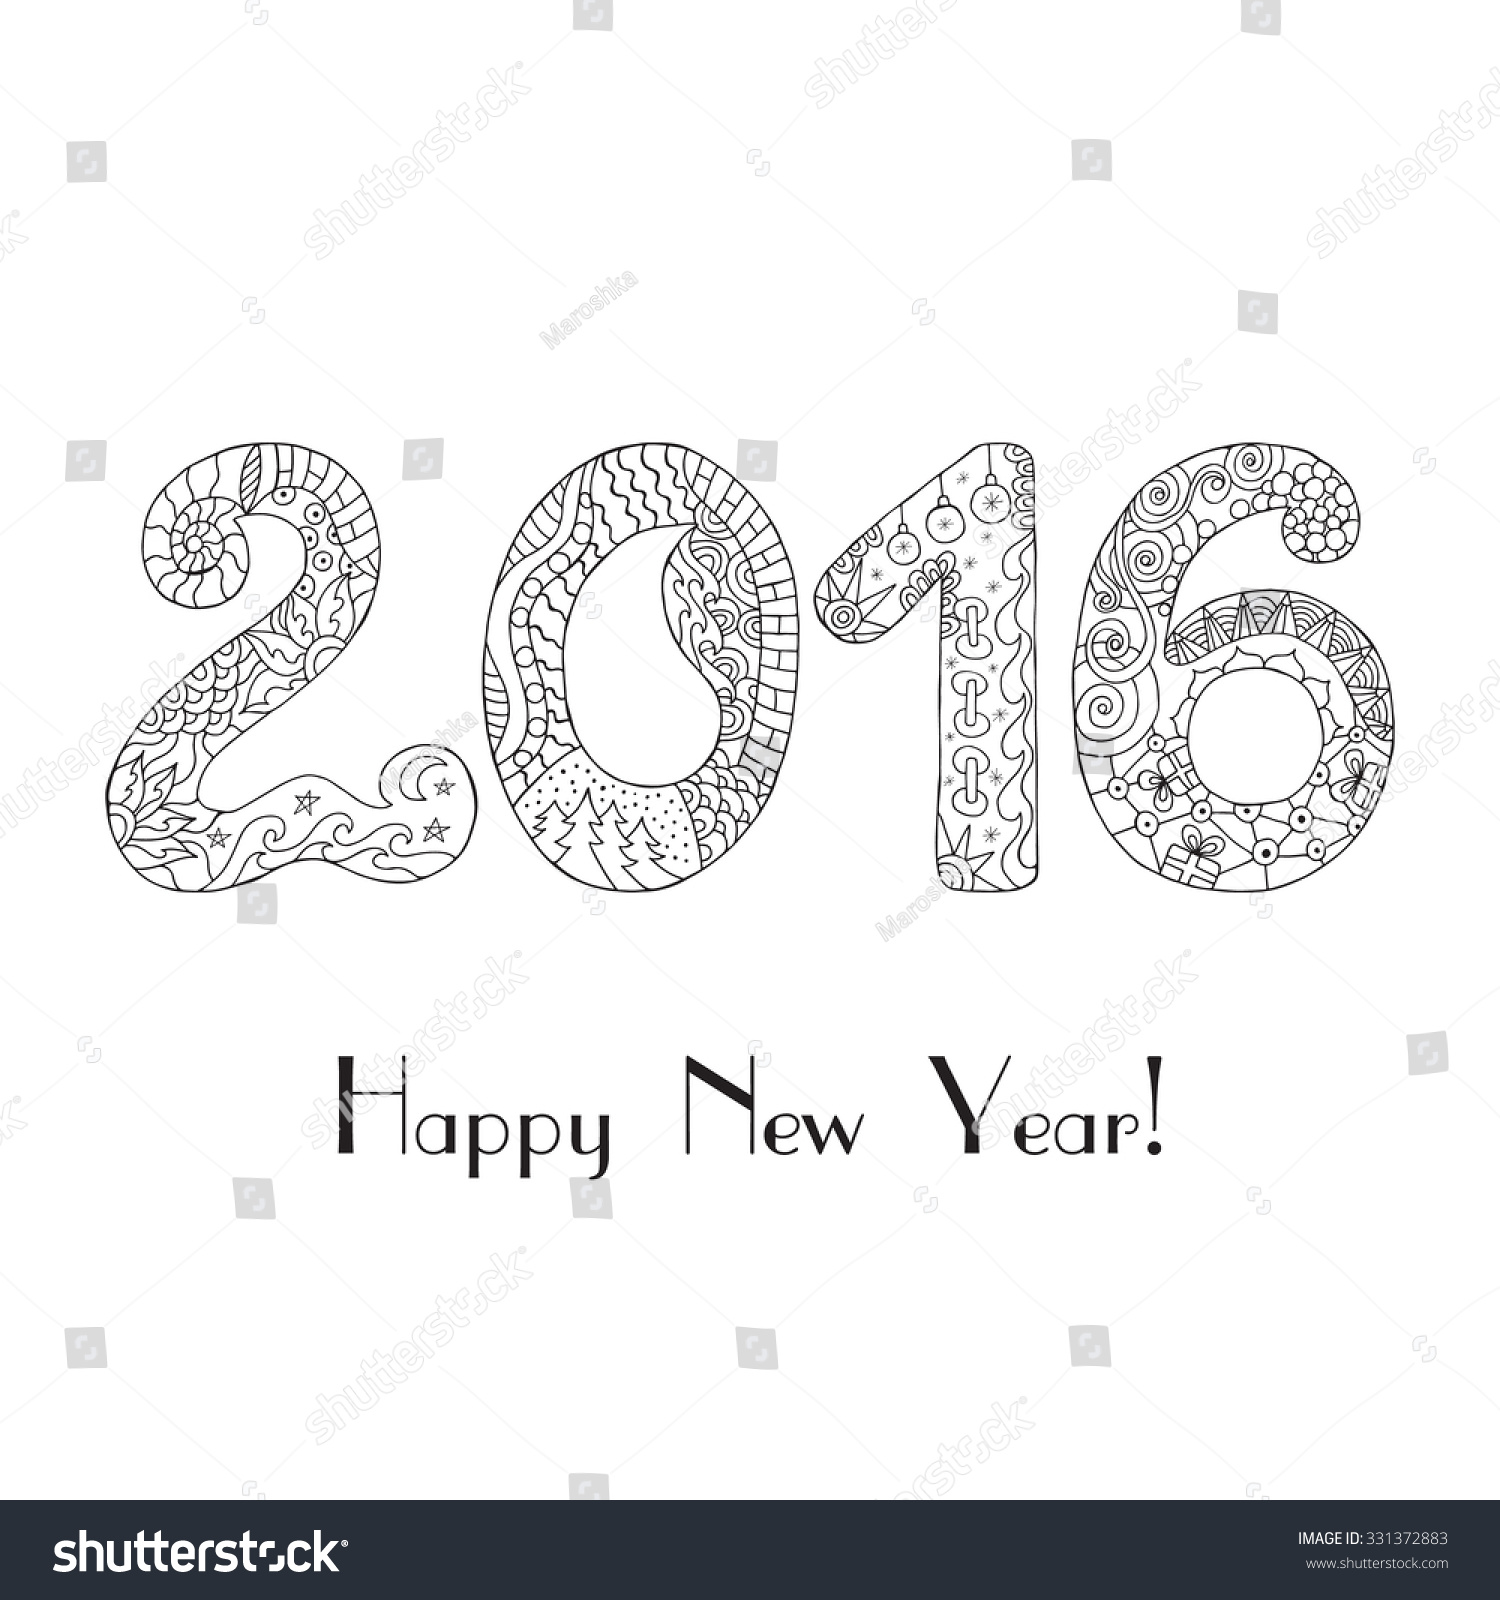 Happy new year 2016 christmas card in zentangle style for for Happy new year coloring pages 2016